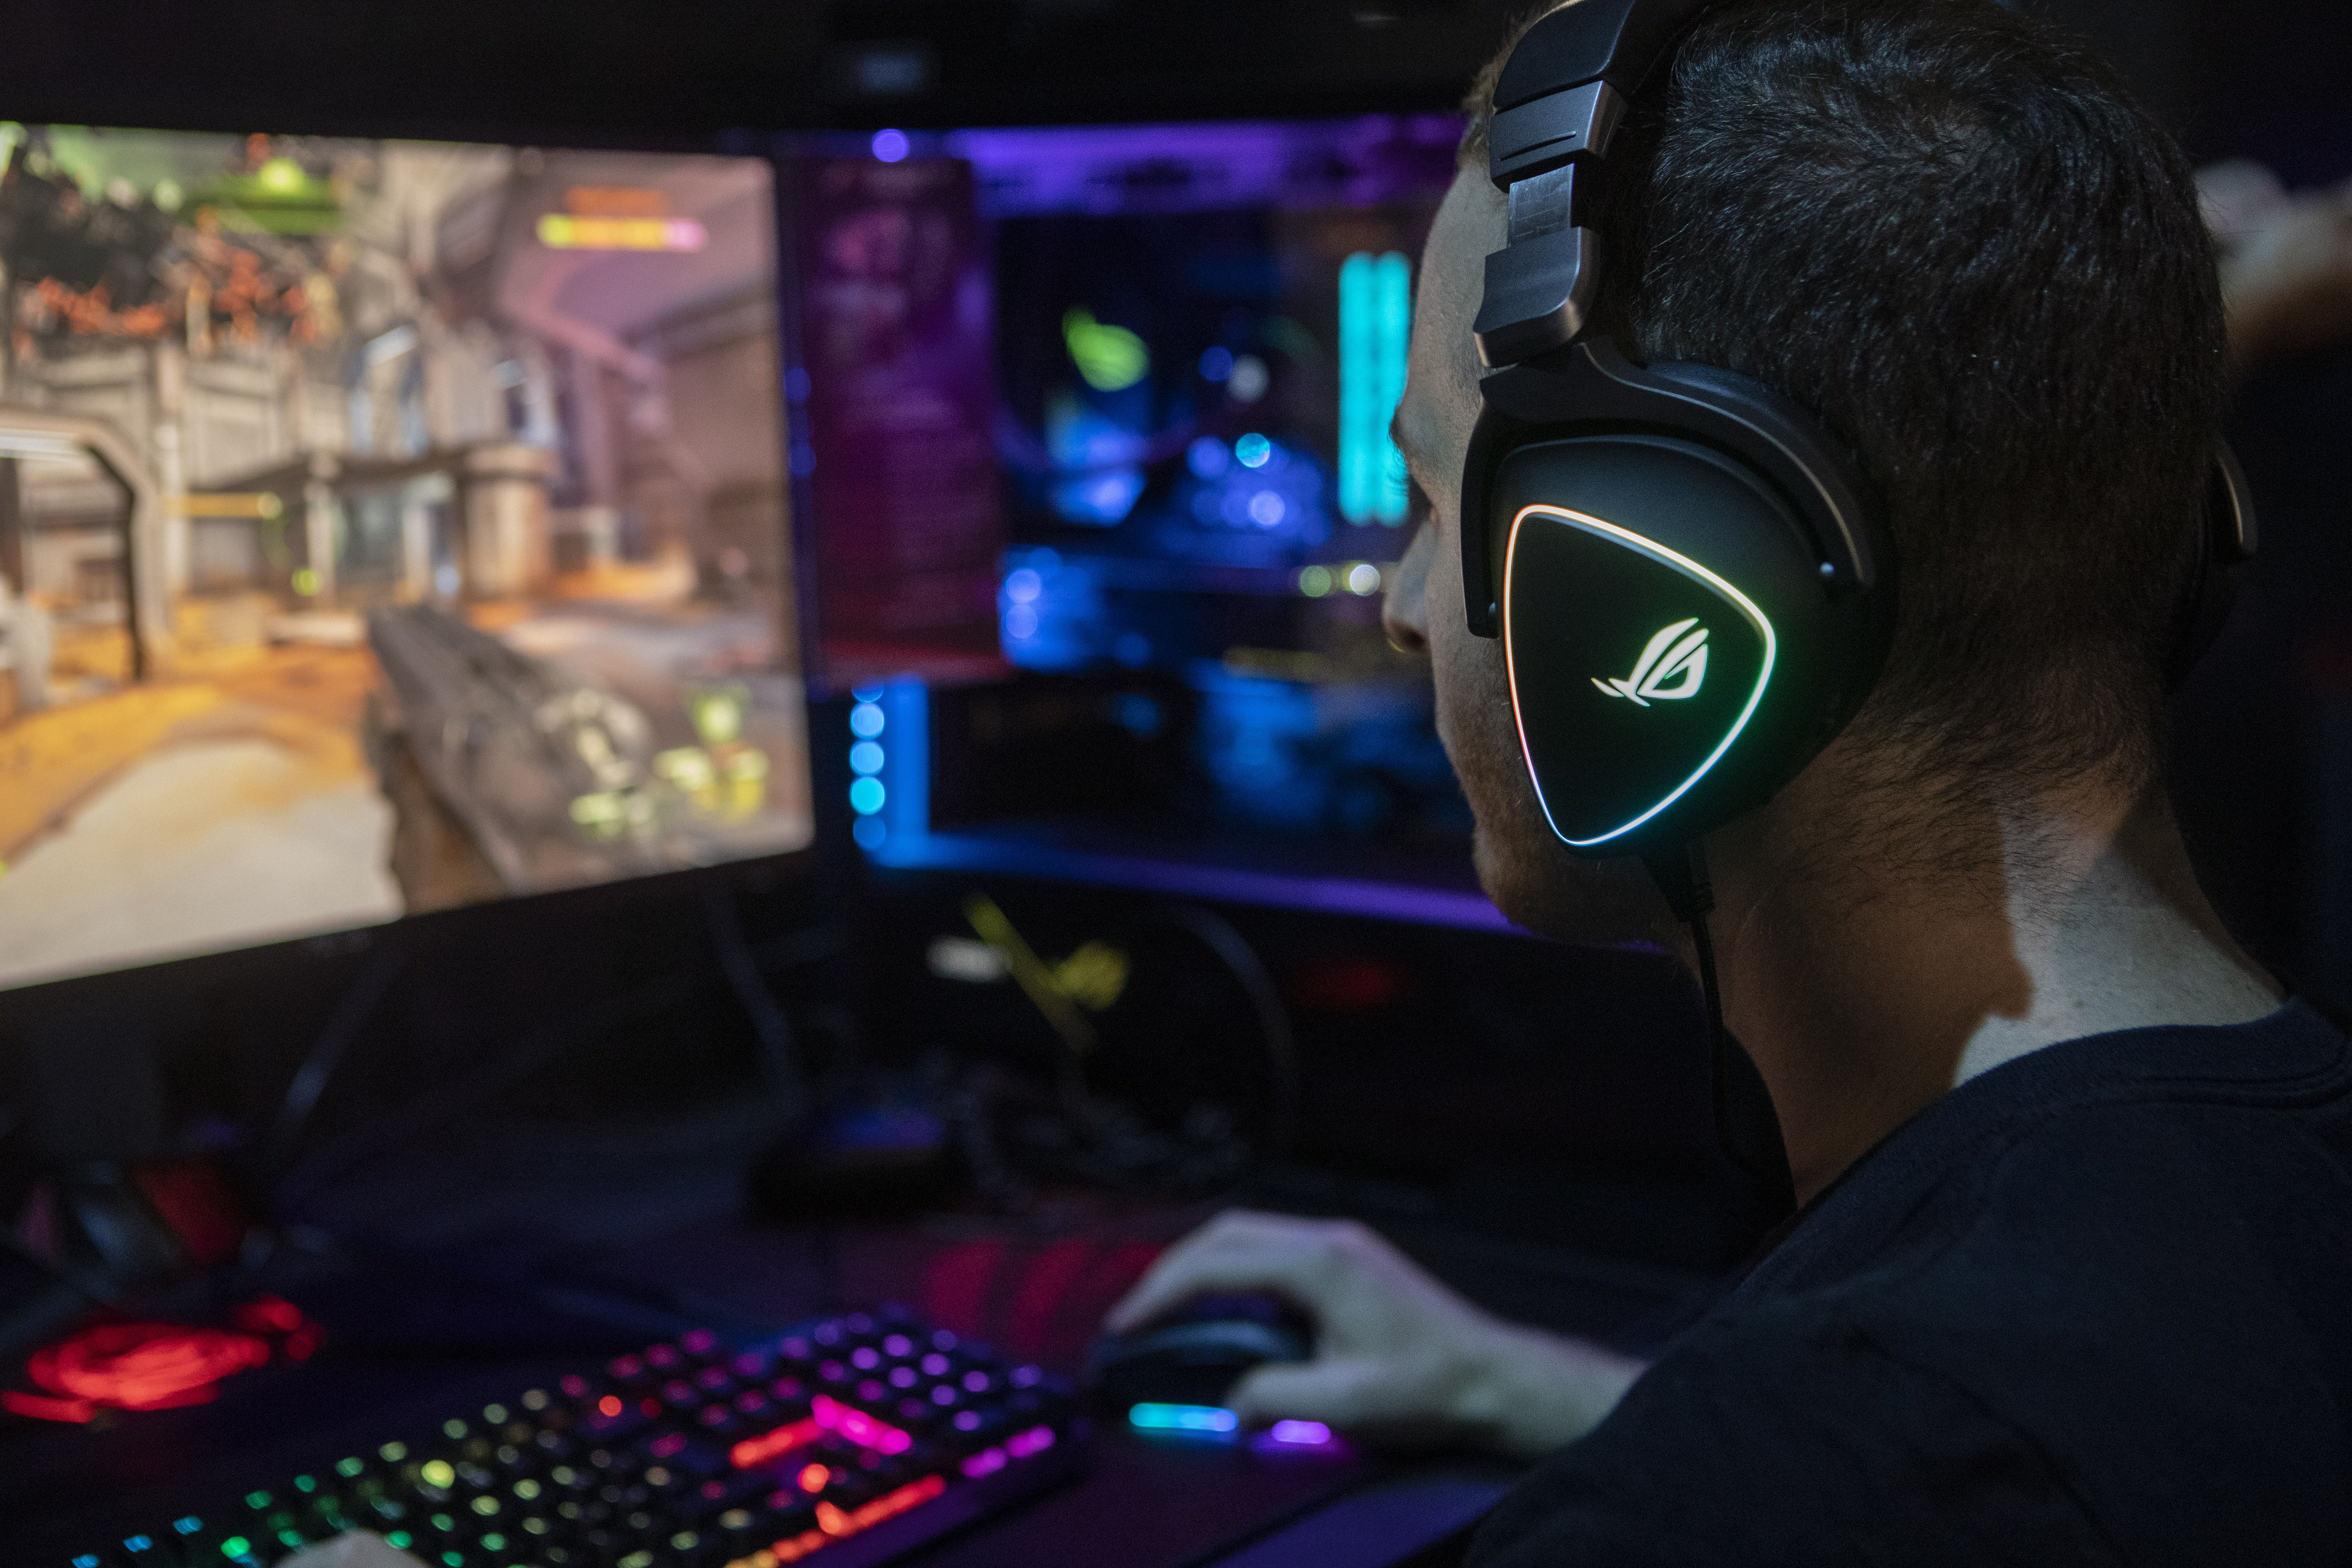 The best Samsung gaming PC monitors